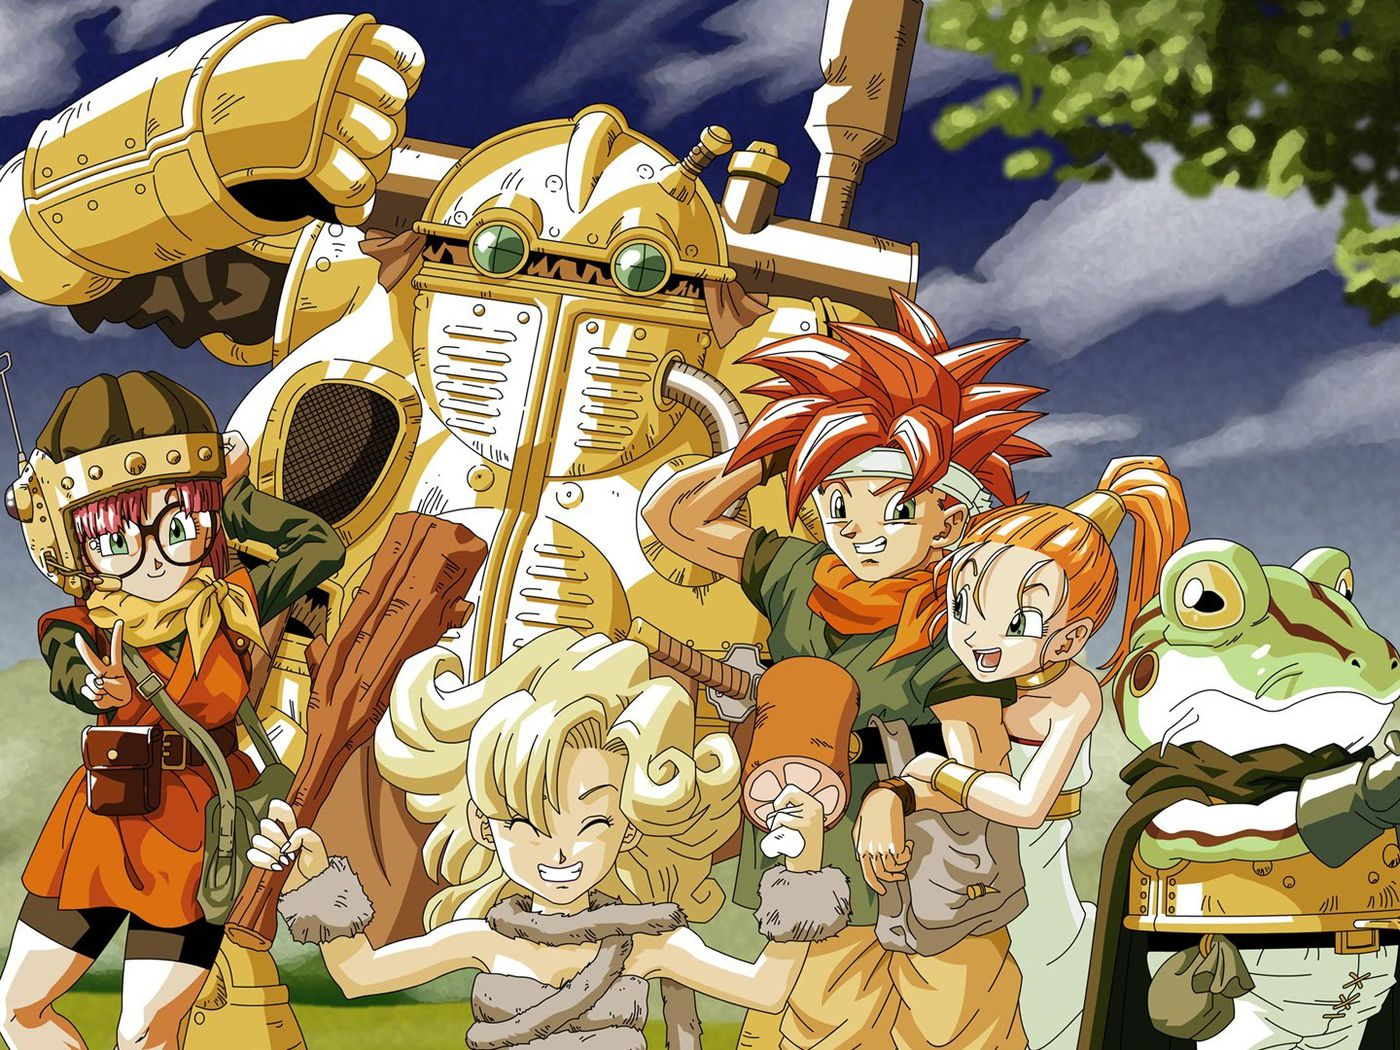 Steam version of Chrono Trigger patched, looks better already - Polygon